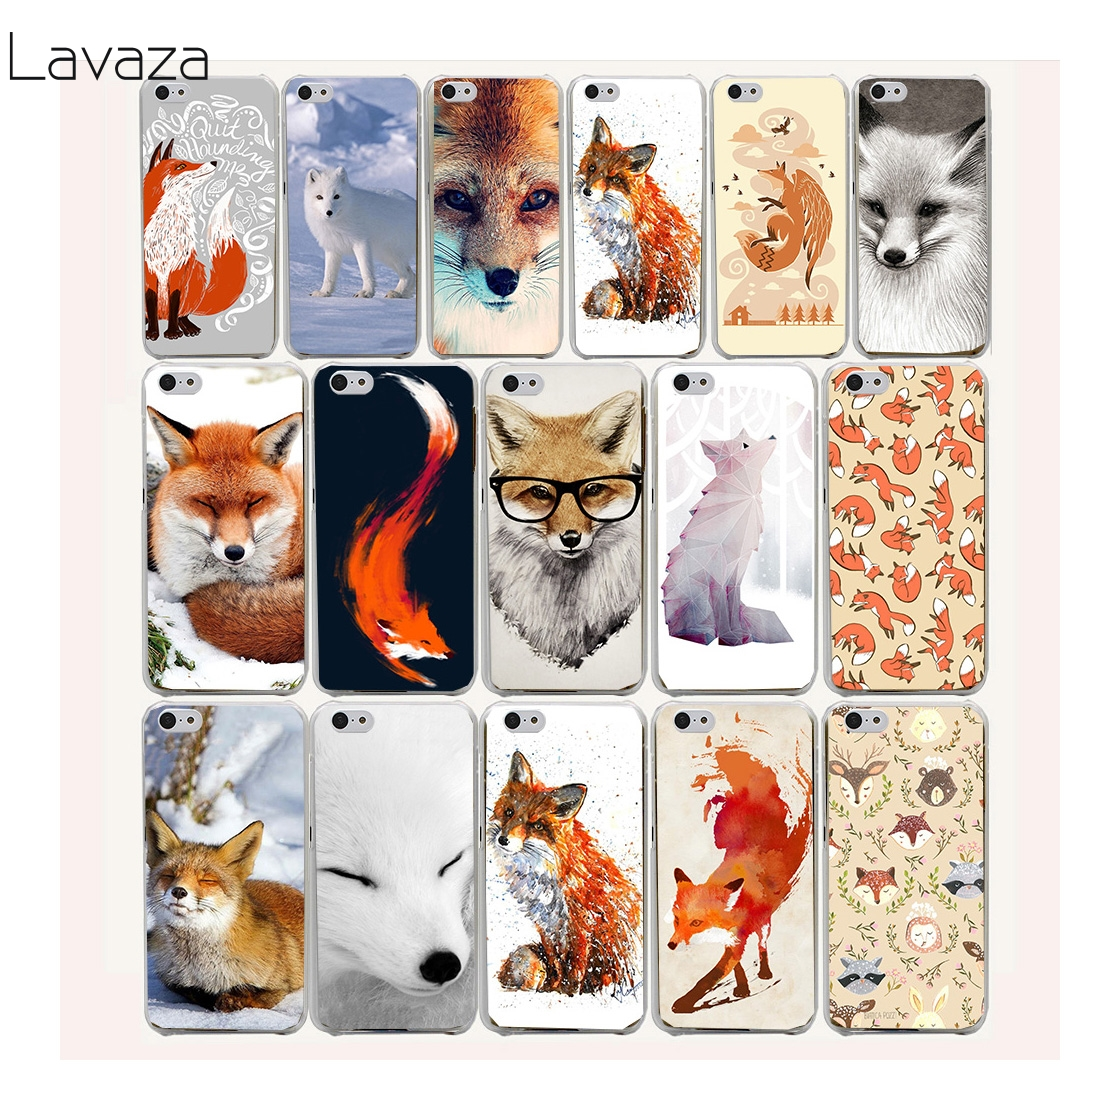 Lavaza 47af lovely cute snow fox Hard Case for iPhone 7 7 Plus 6 6S 8 8 Plus X 10 5 5S SE 5C 4S Cover